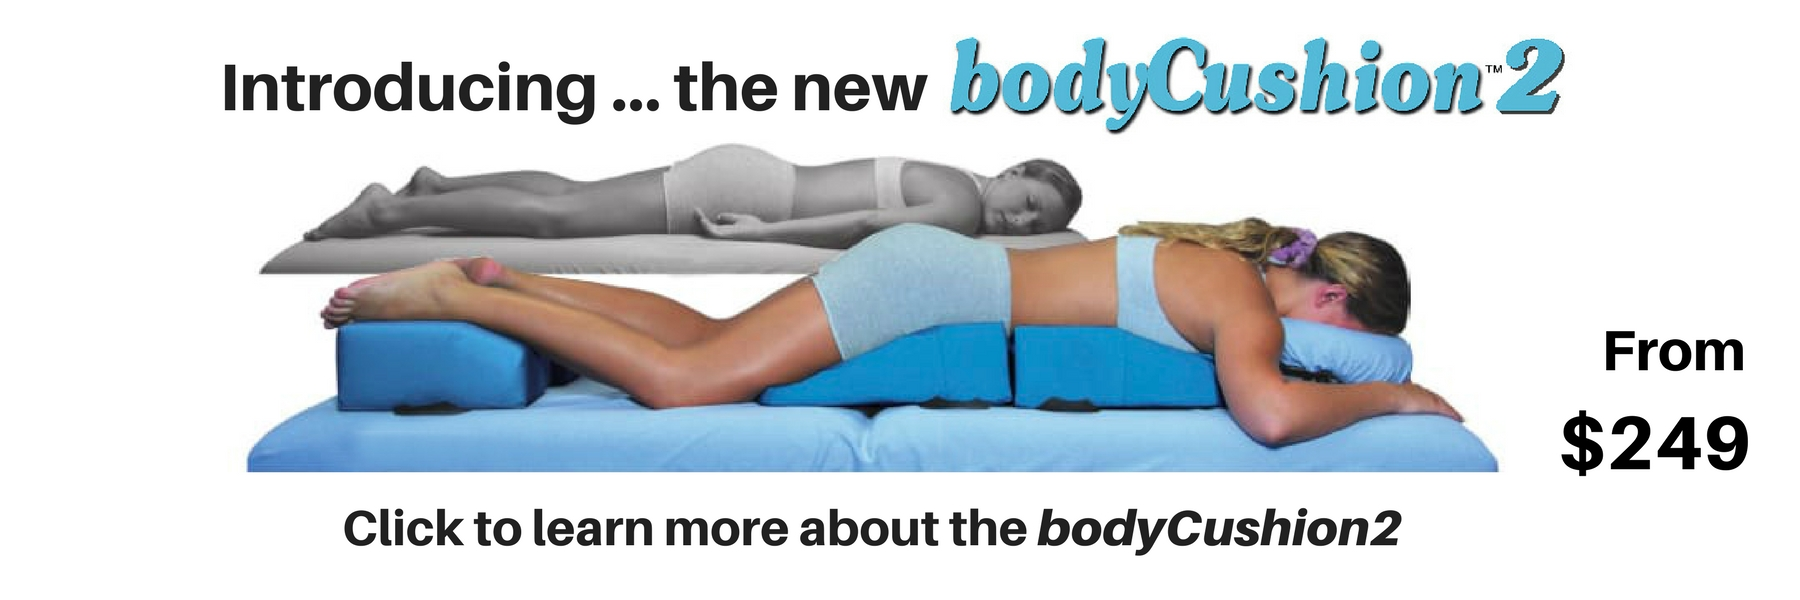 Introducing ... the new bodyCushion2. From $249. Click to learn more about the bodyCushion2